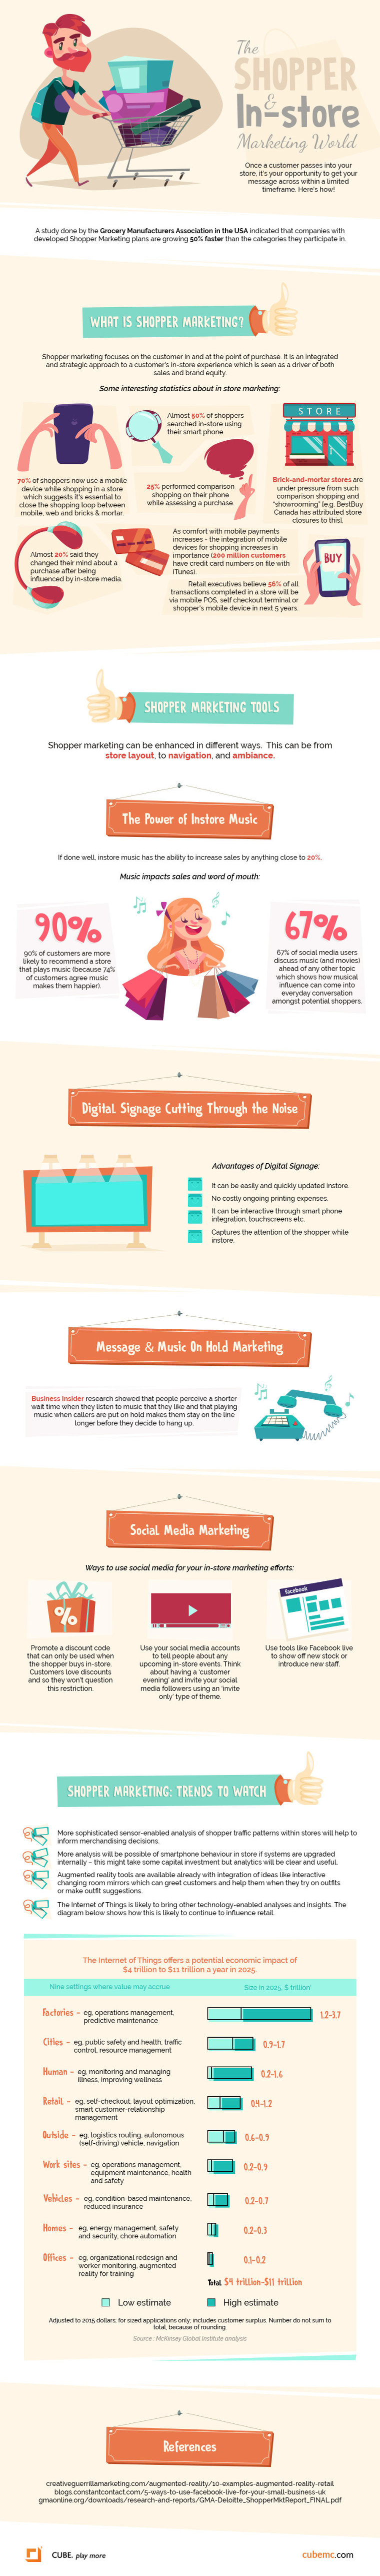 Shopper marketing guide infographic